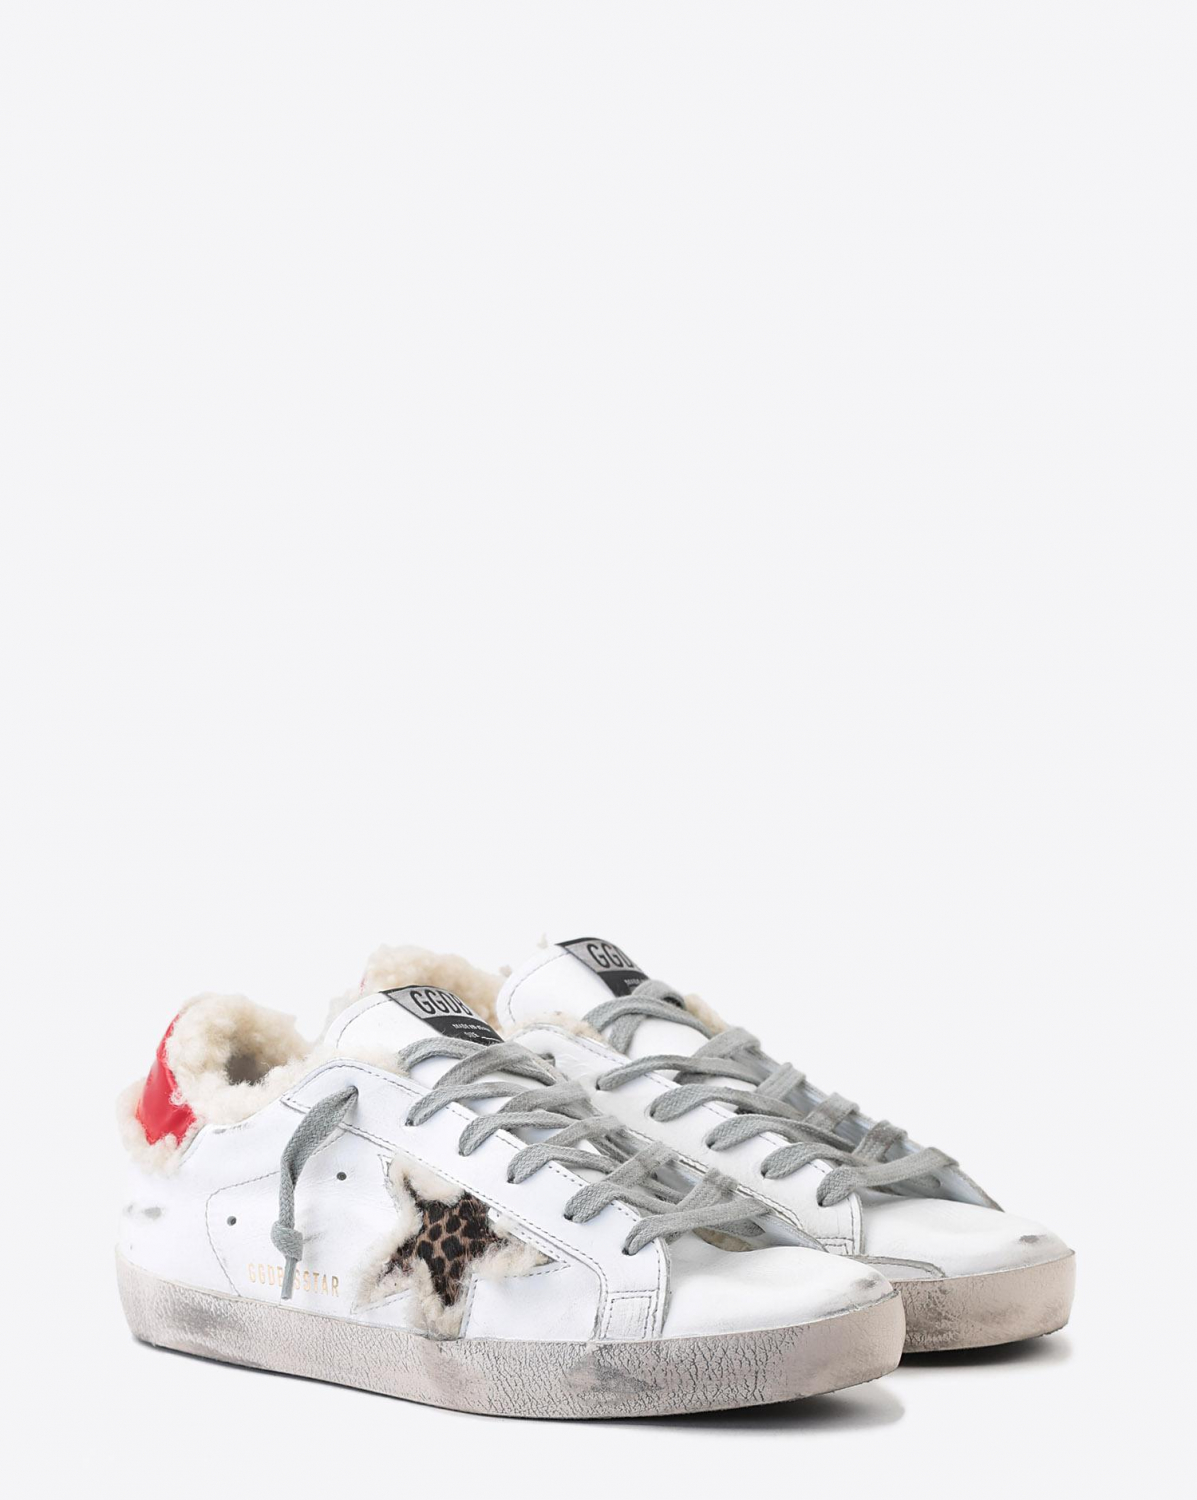 Golden Goose Woman Pré-Collection Sneakers Superstar - White Shearling - Leopard Star